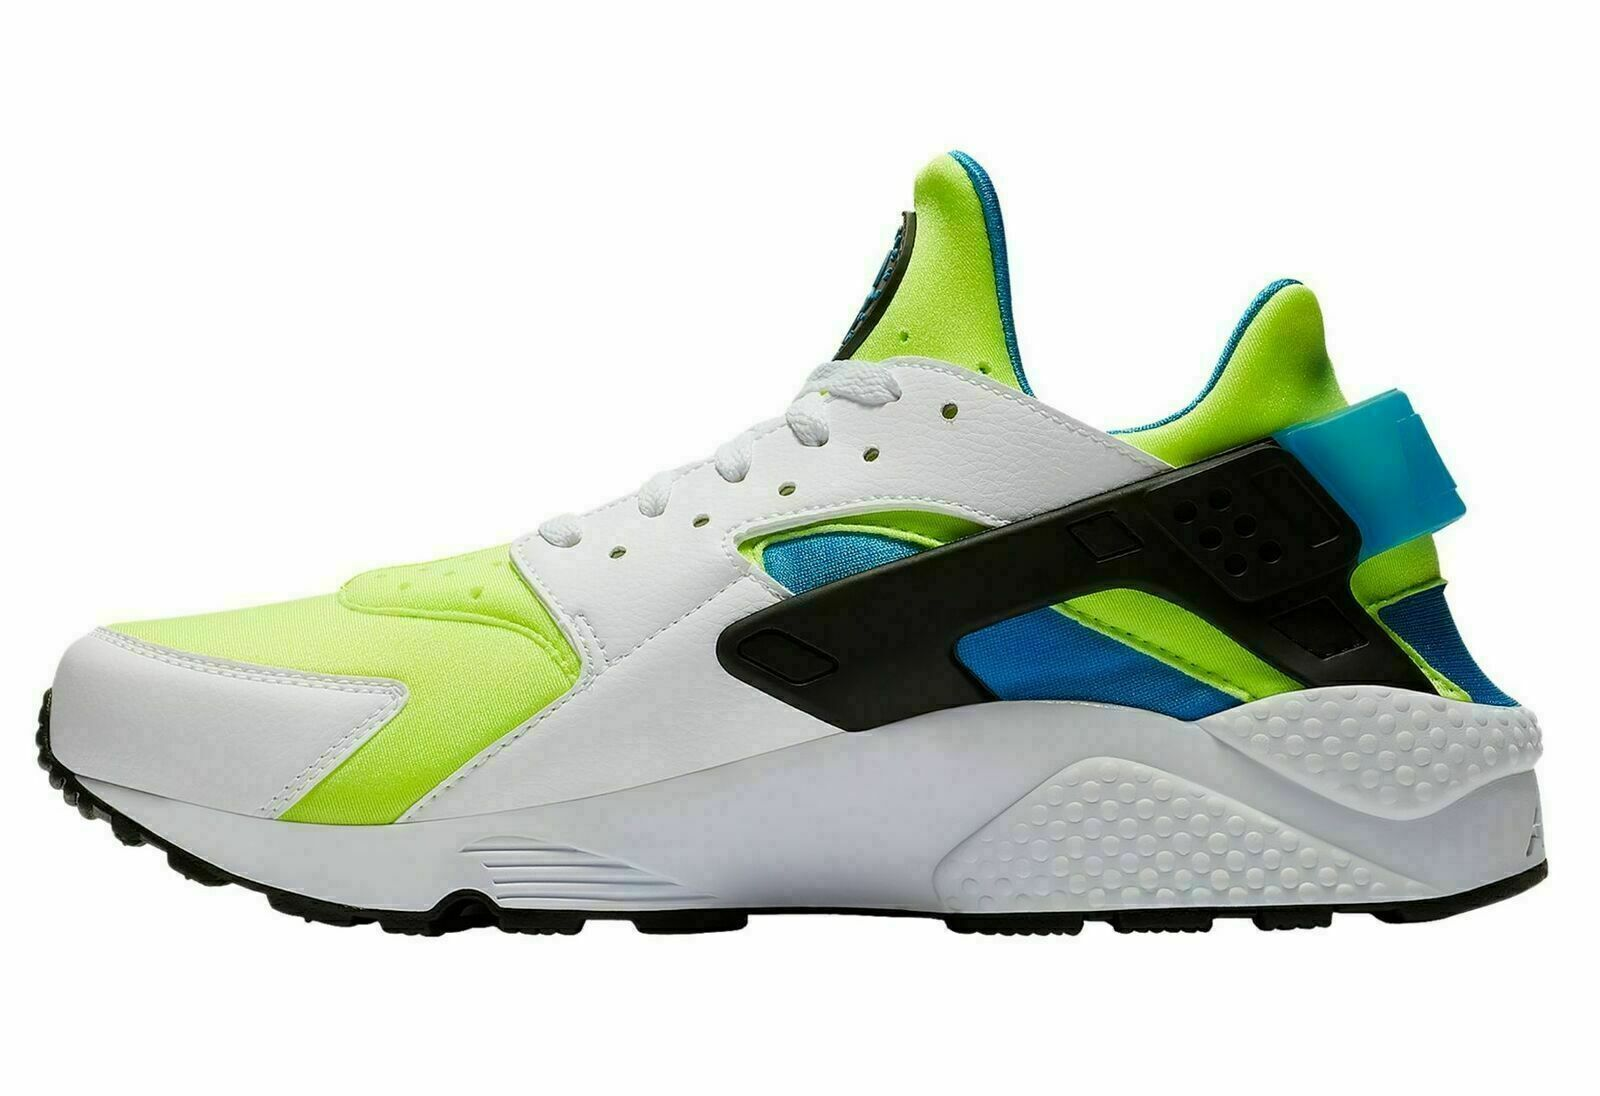 MEN'S NIKE AIR HUARACHE RUN SE SHOES white volt black blue AT4254 101 image 2